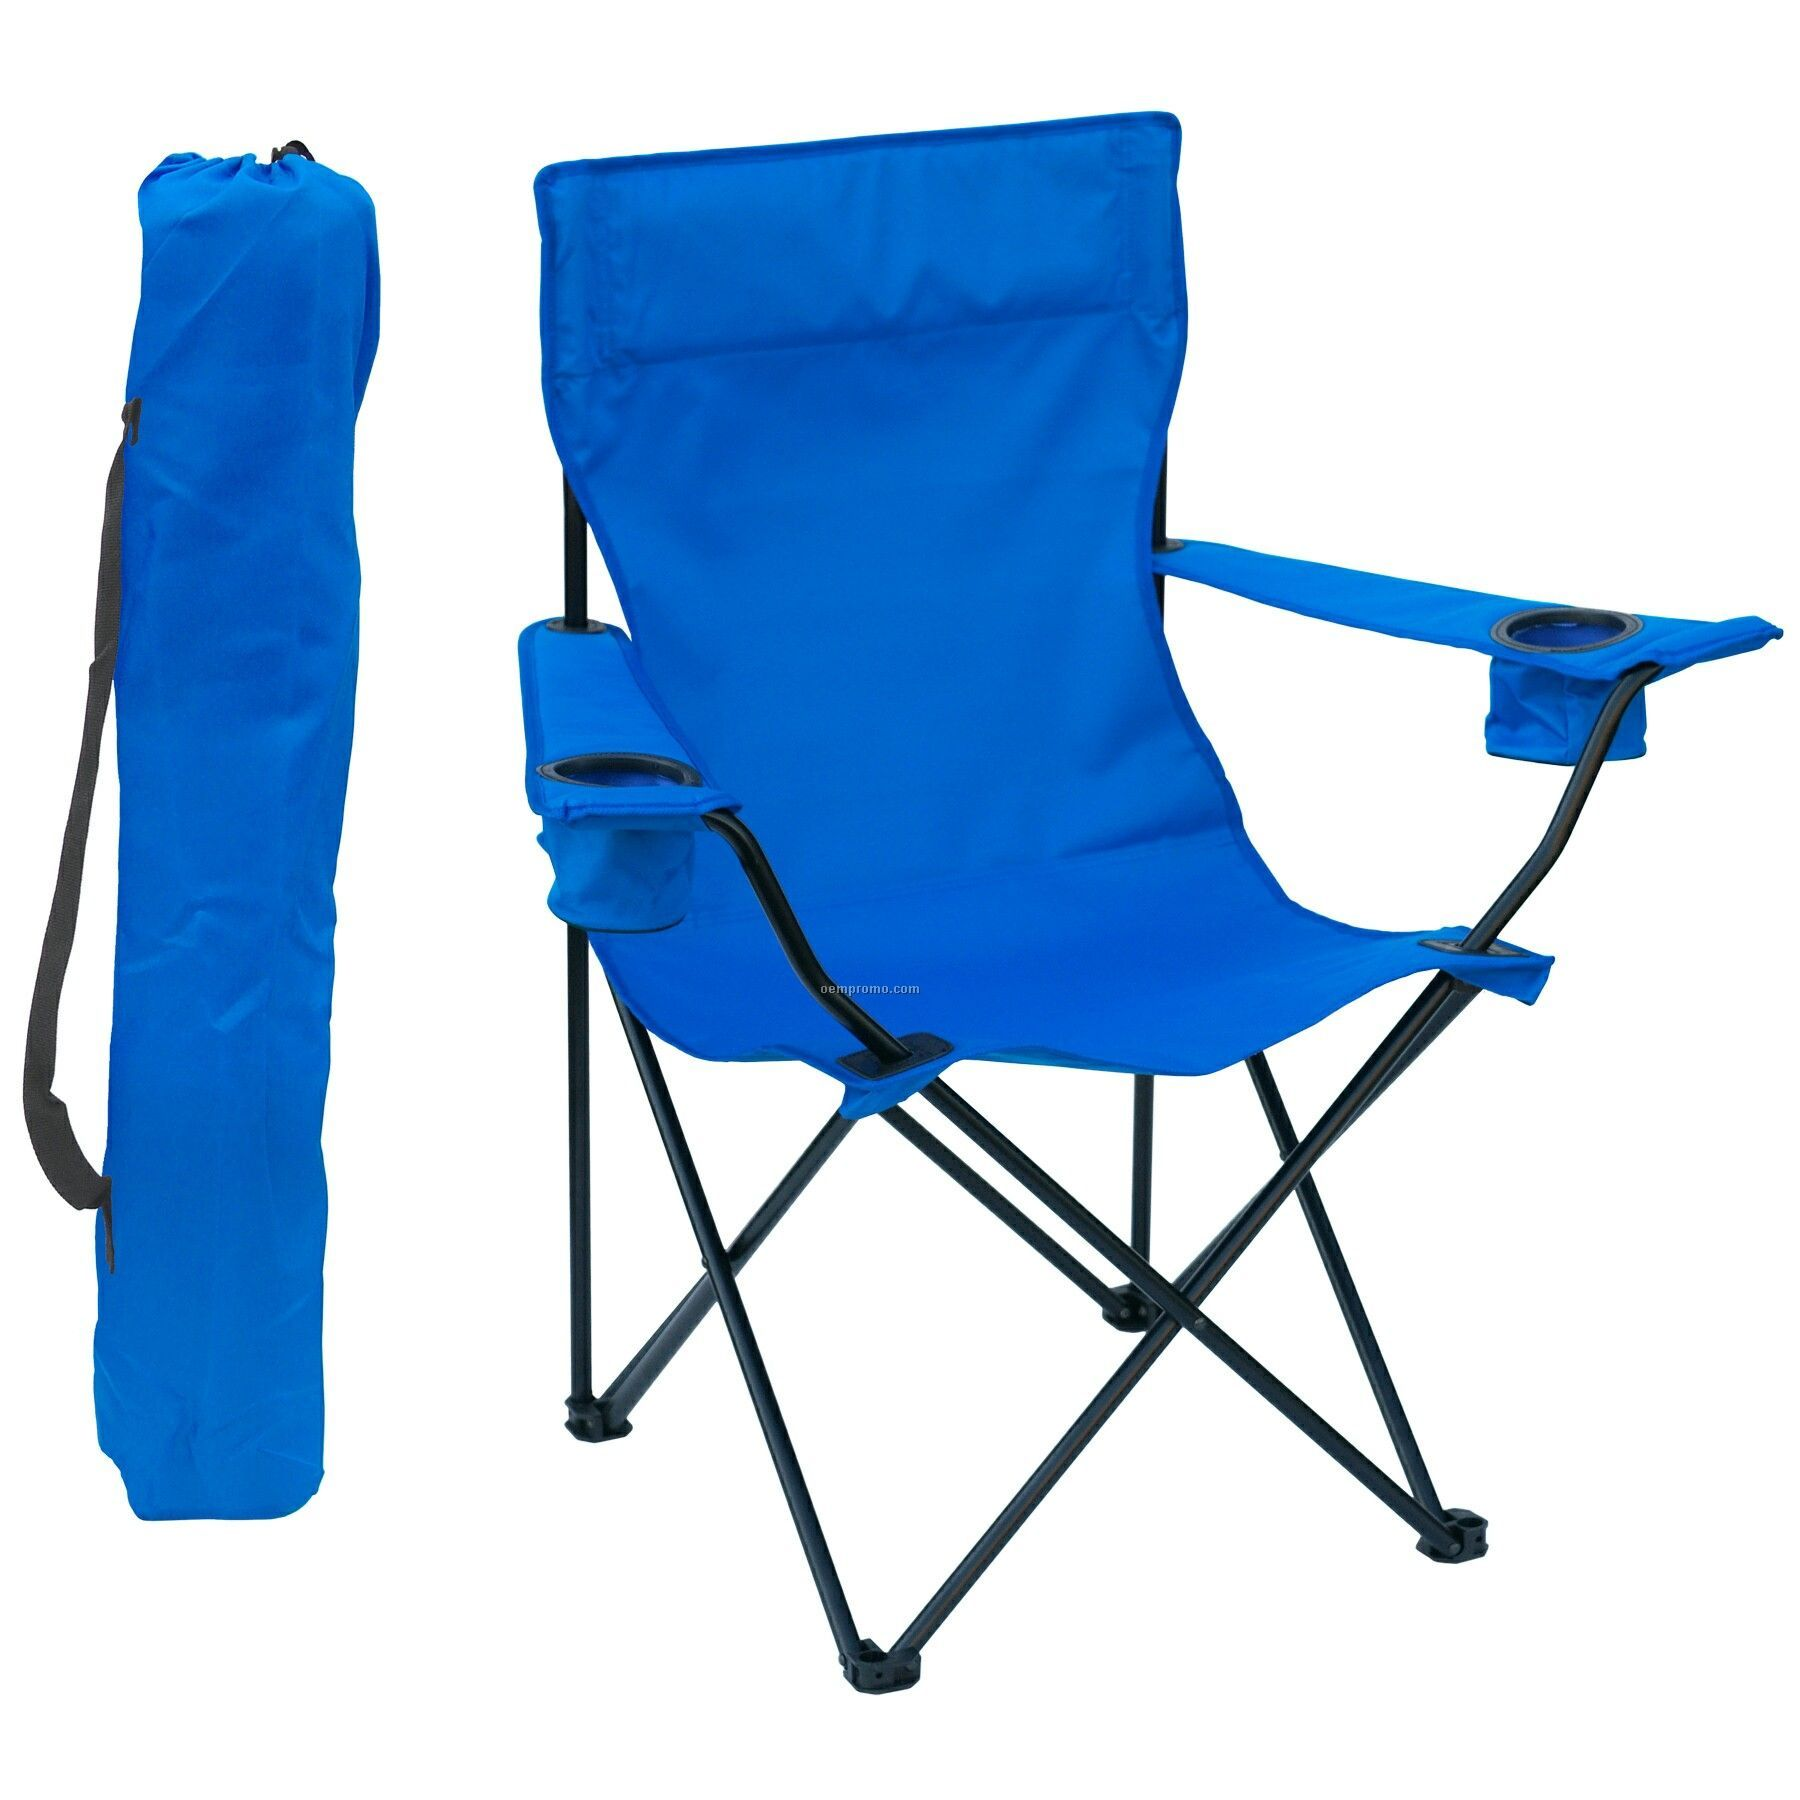 Folding Chair W Arm Rests 2 Cup Holders And Carry Bag